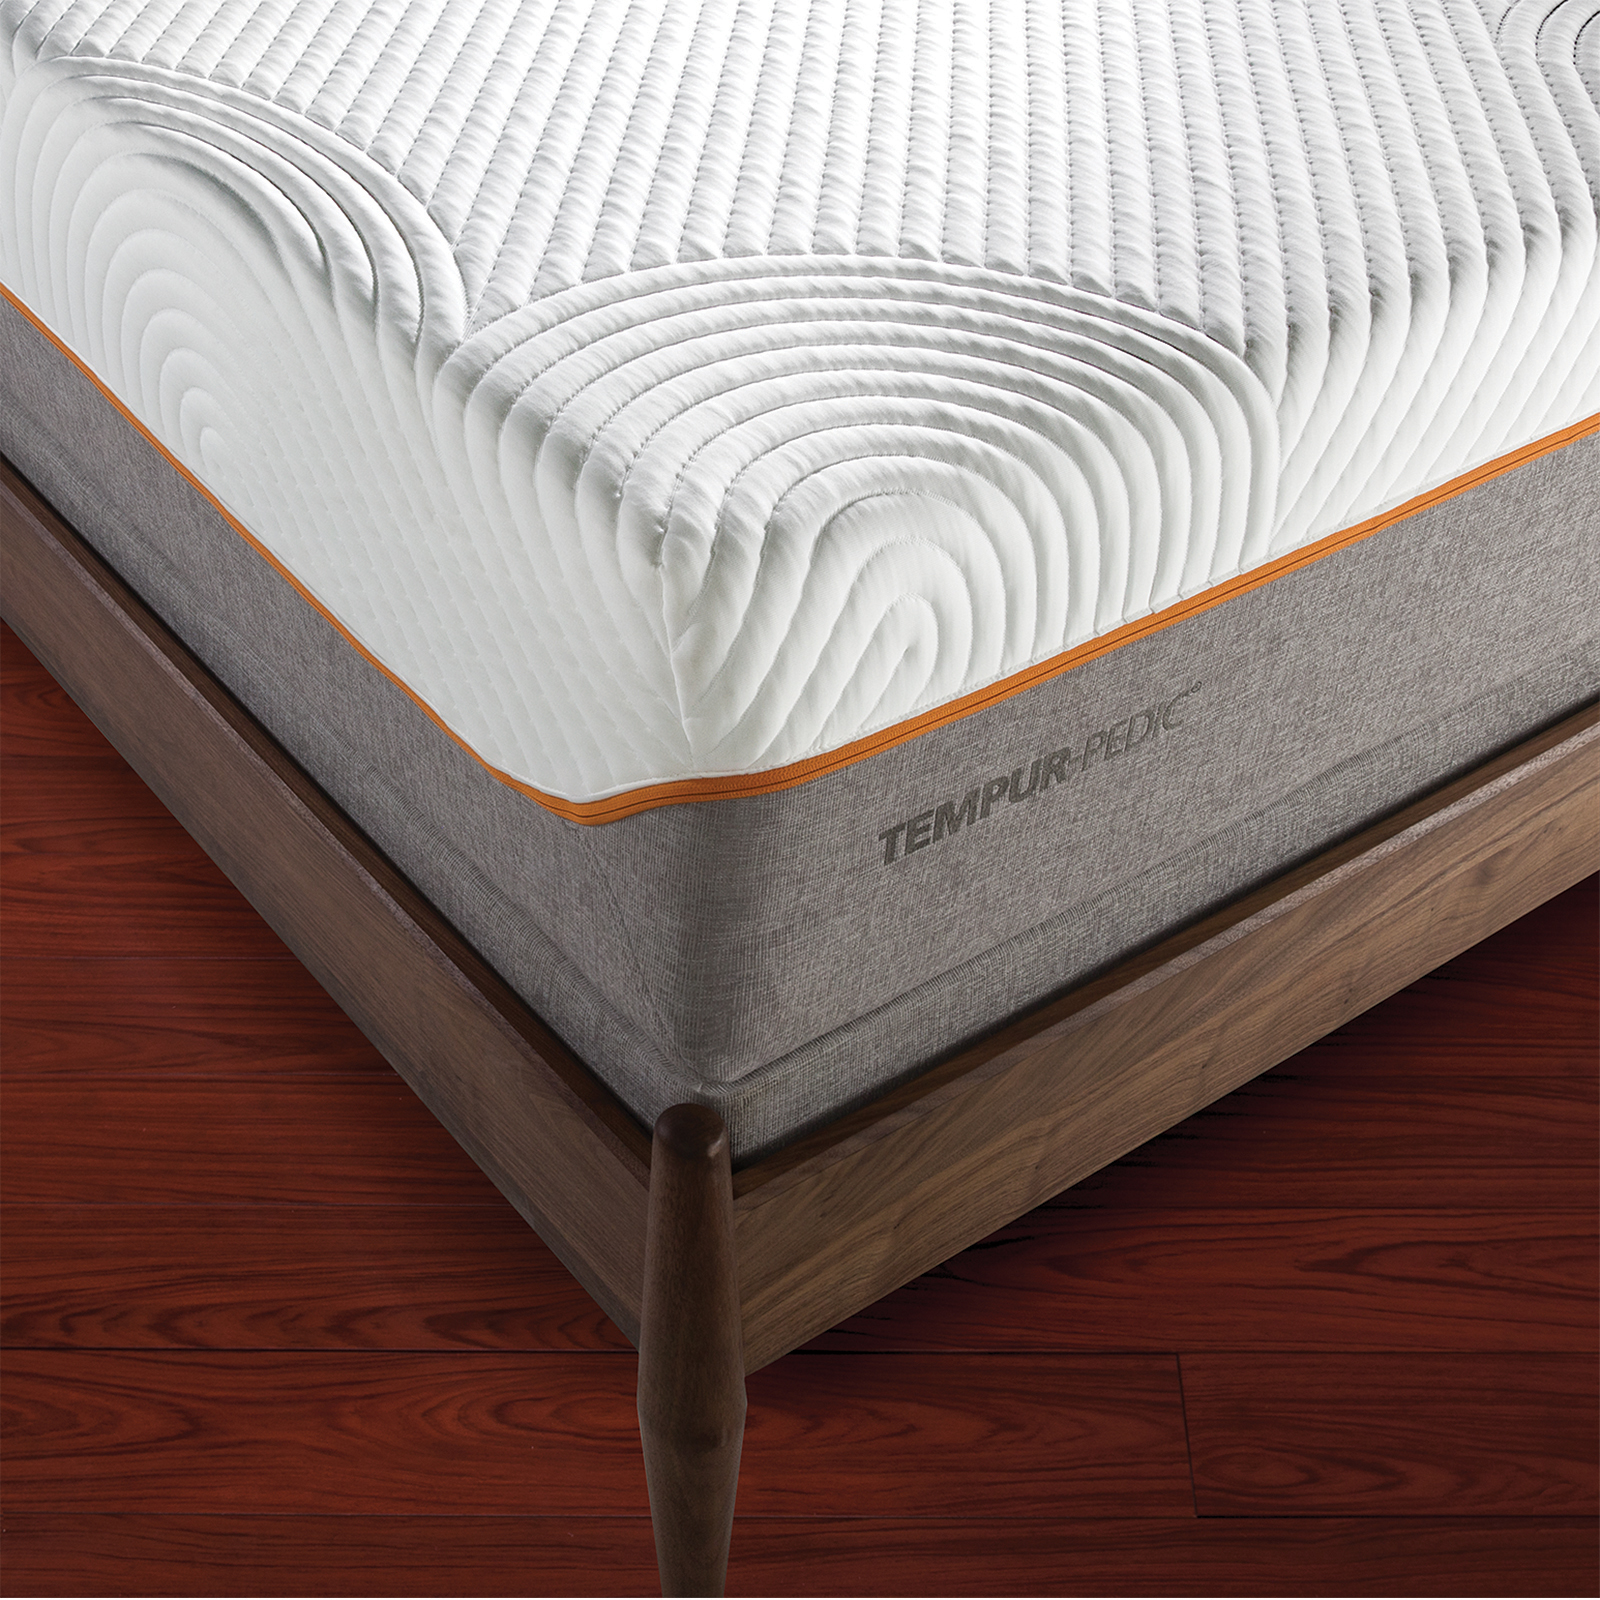 Tempur Pedic TEMPUR Contour Elite King Mattress